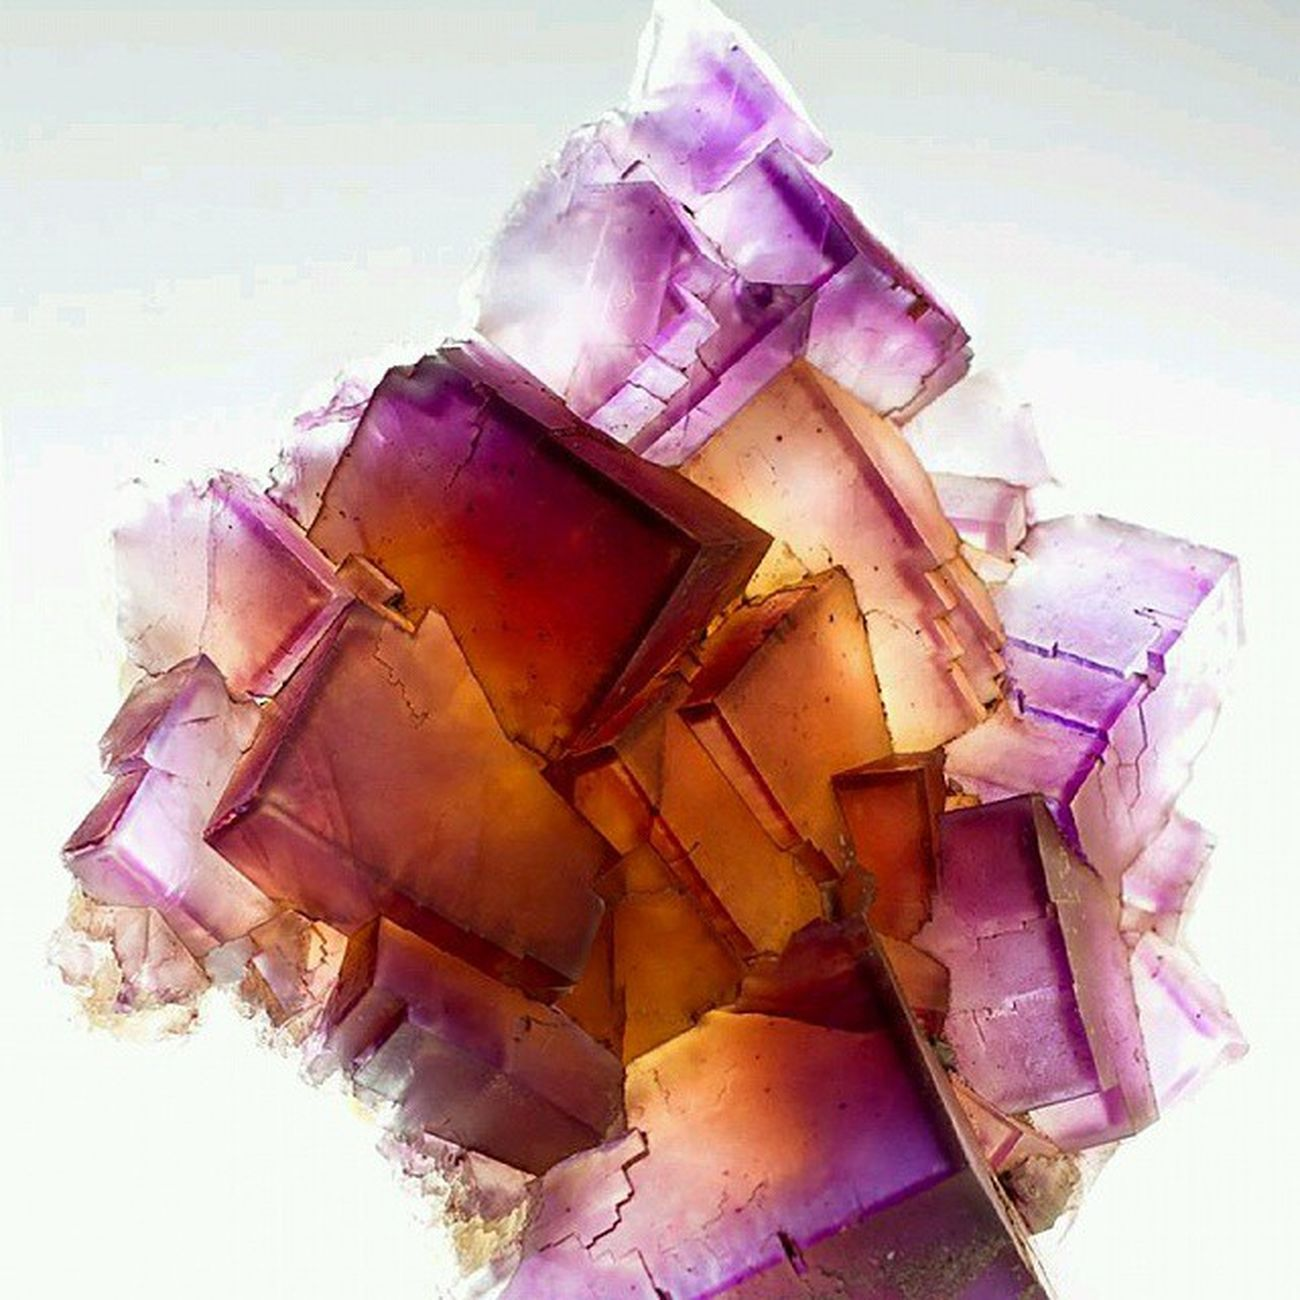 Kuvars grubu minerallerinin ozel bir cesidi Ametrin. Ametist ve sitrin in karisimi diyebiliriz kisaca😉Ametrine is a naturally occuring form of Quartz . Ametrine is a mixture of Amethyst and Citrine .Mineral Mineralogy Stone Gemology Gemstones Naturelovers Nature_perfection Natura Instamineral Turkinstagram Turkishfollowers InstaVsco